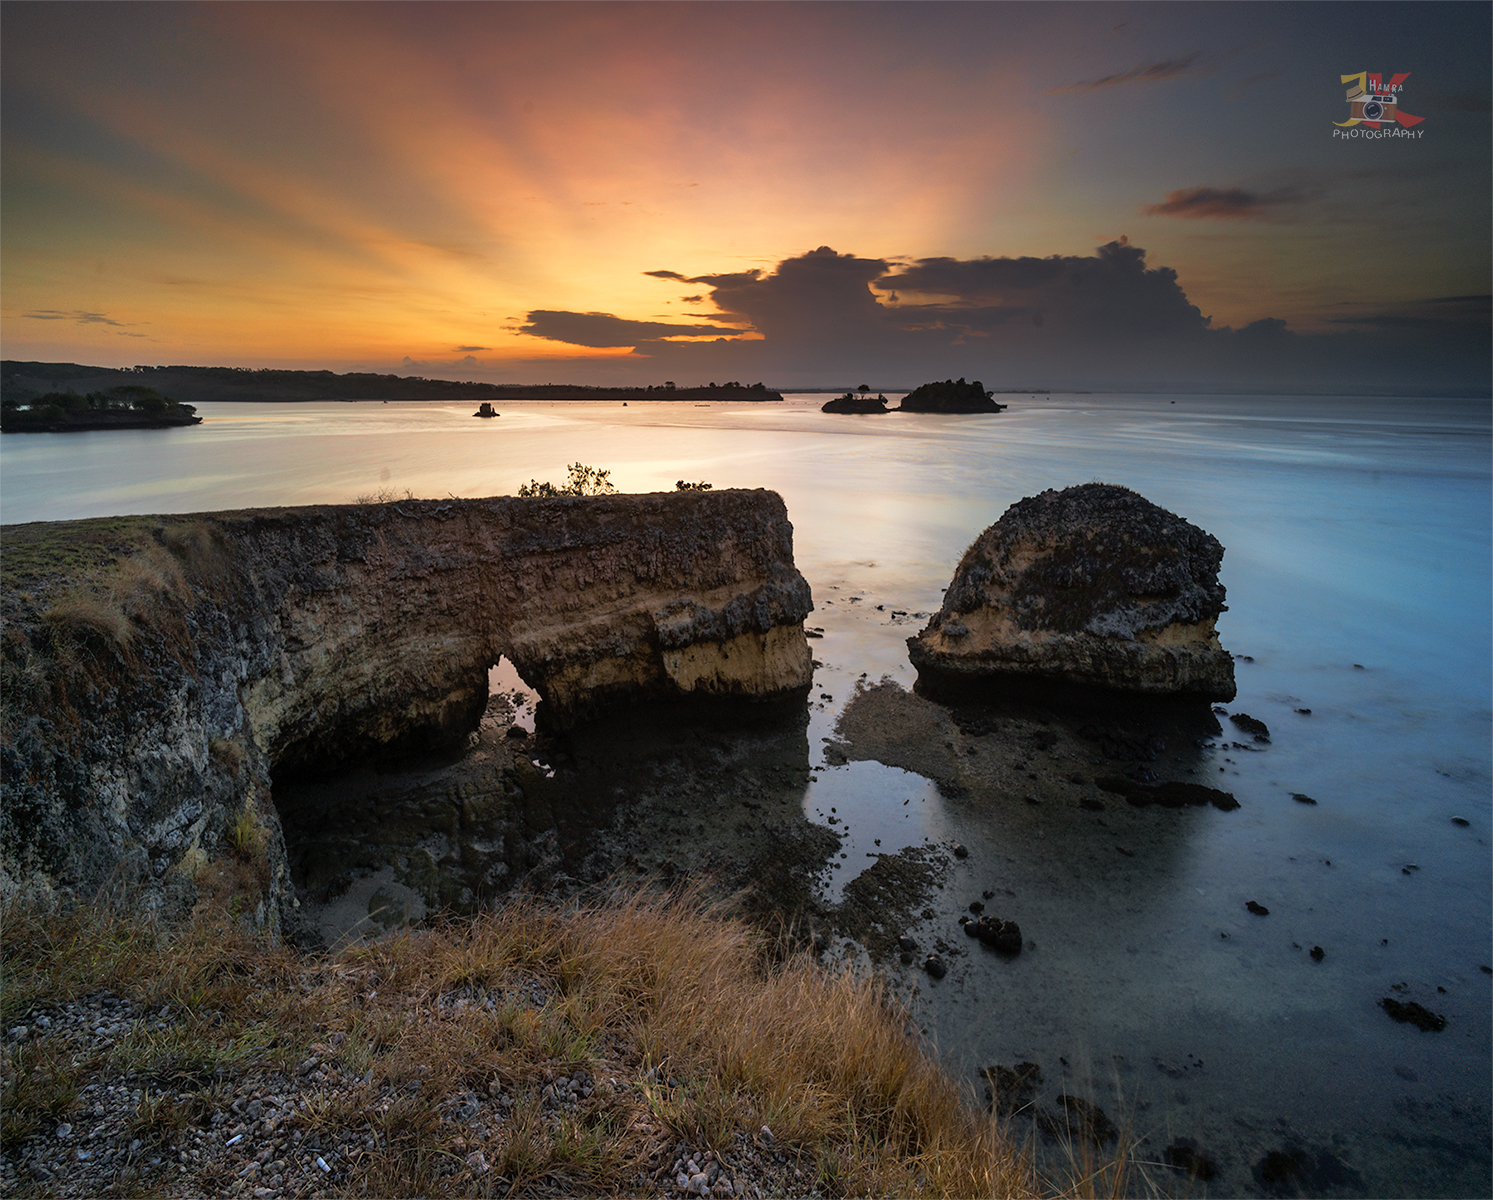 Sunset at Pink beach lombok, Indonesia